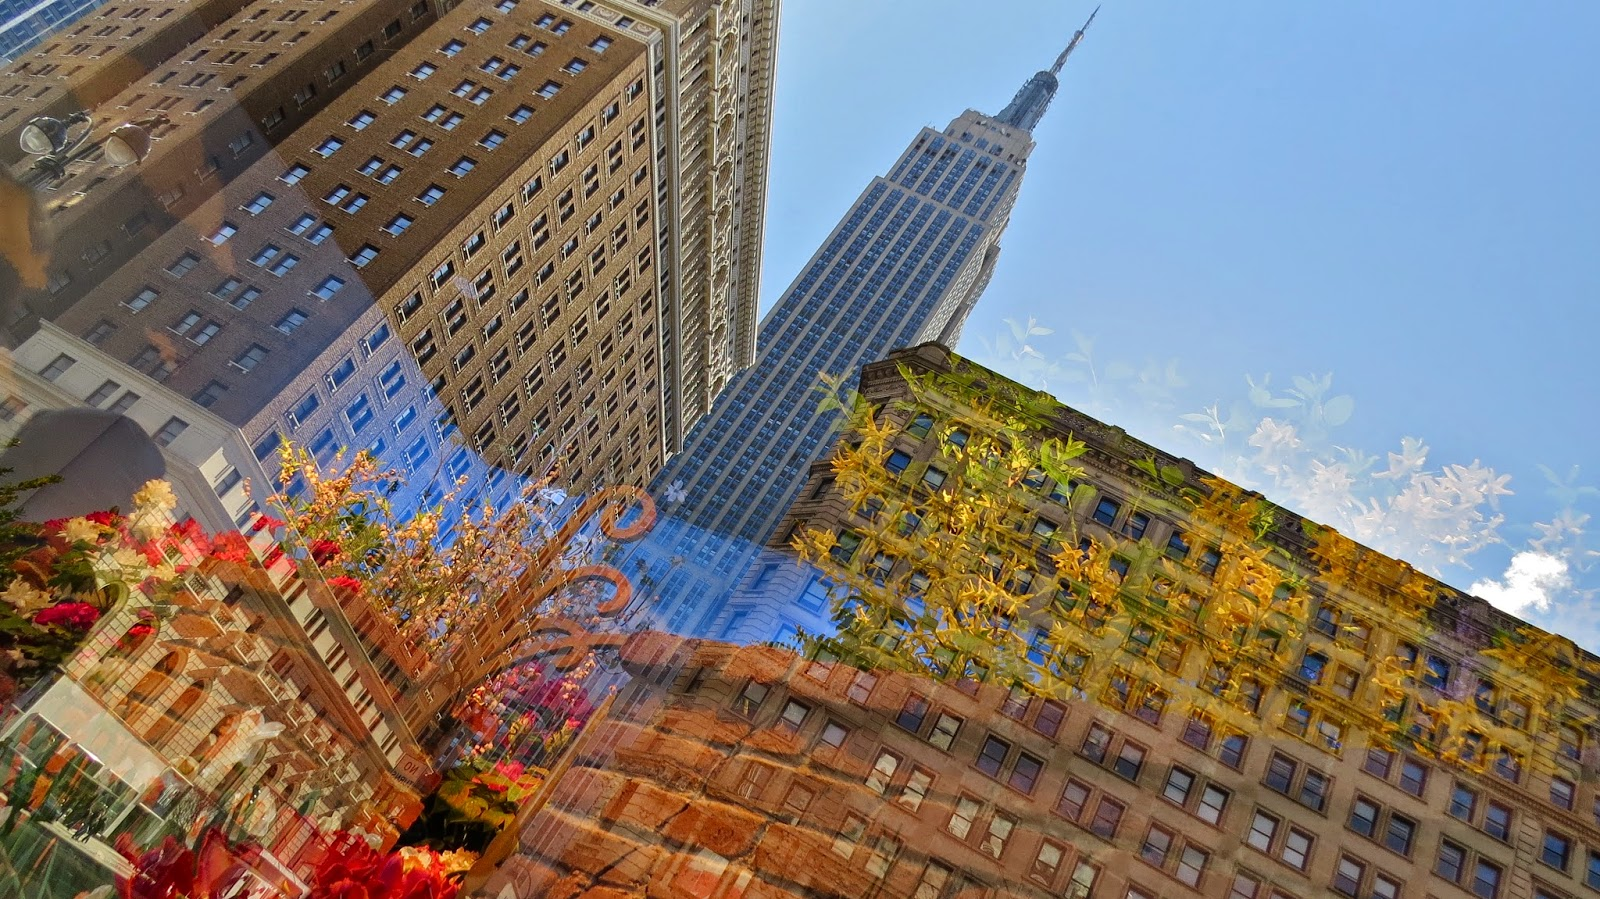 Reflections-on-The-Empire-State-Building-at-The-Macy's-Flower-Show